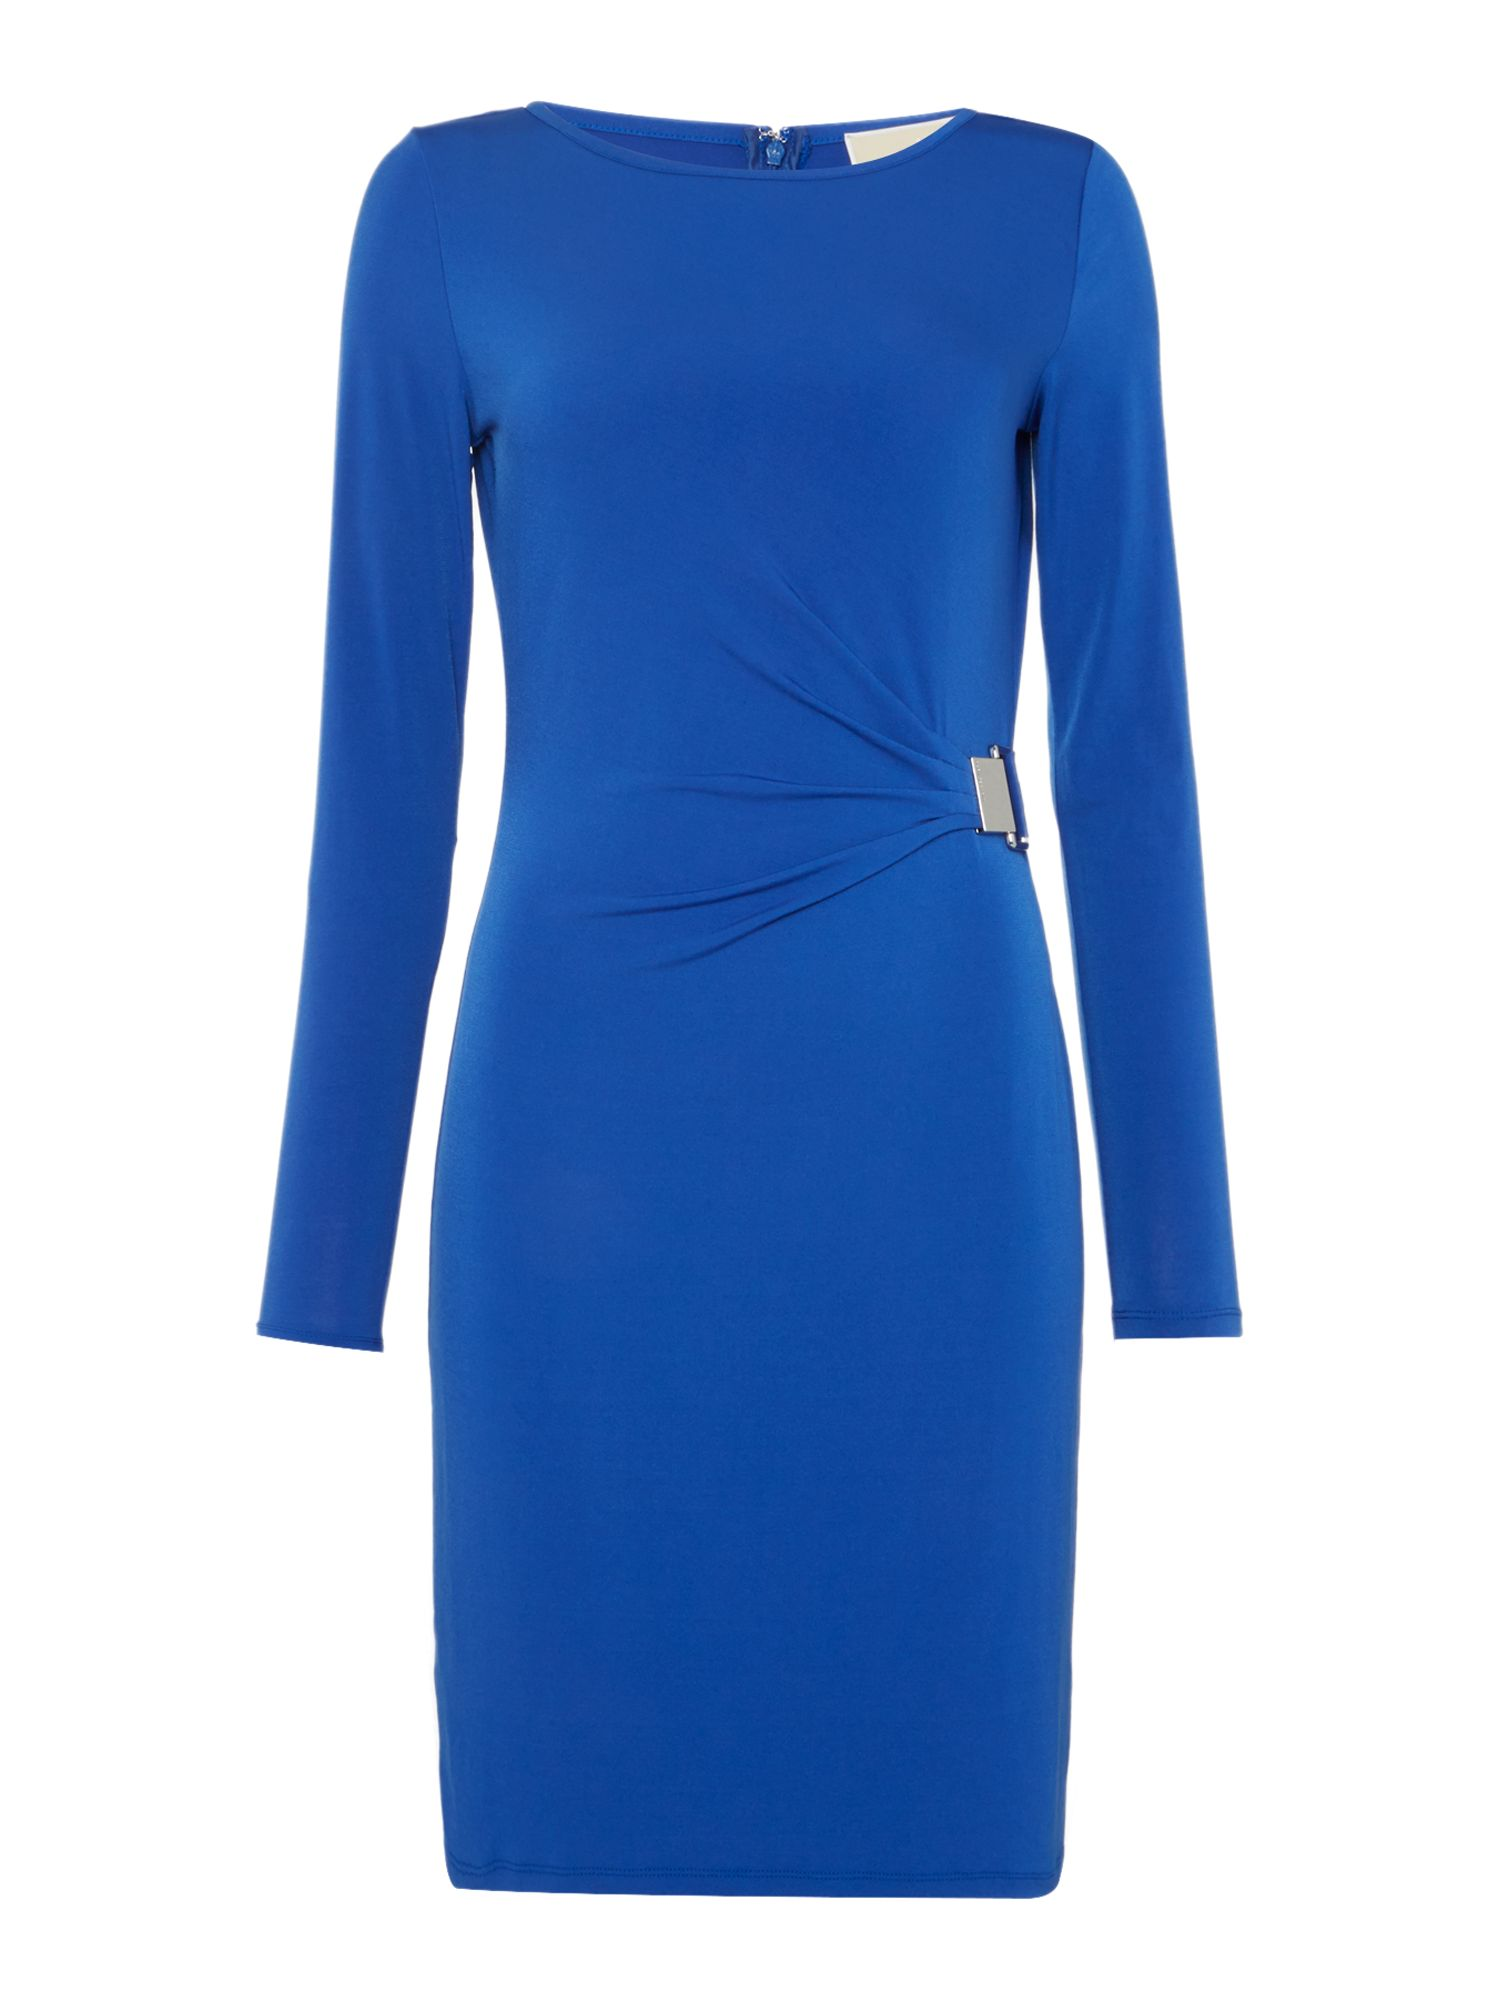 Michael Kors Long Sleeve Pleat Drape Dress, Royal Blue